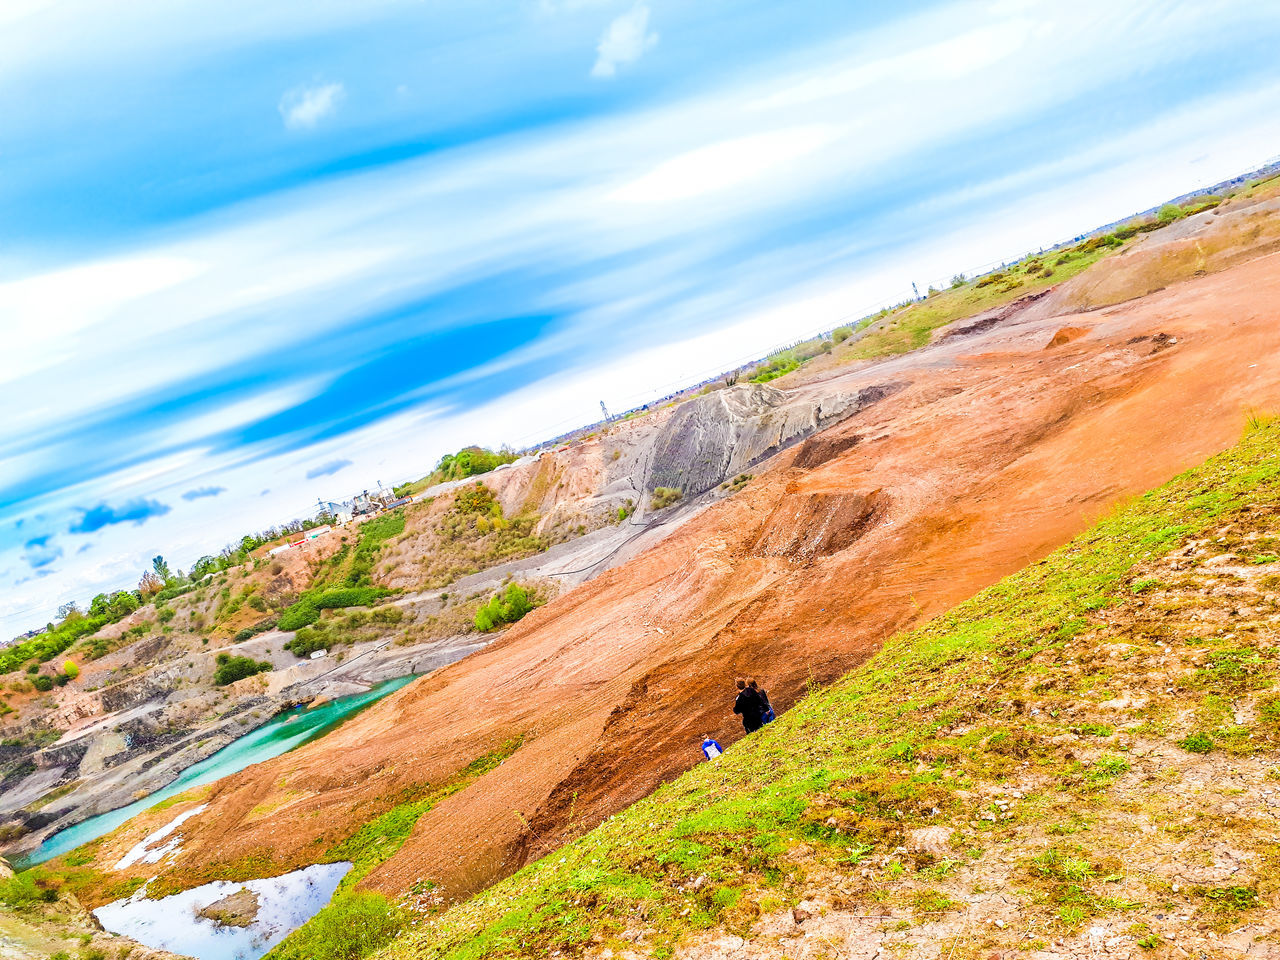 Found a quarry behind Bedworth Landscape Nature Outdoors Multi Colored Quarry Cloud - Sky Scenics Beauty In Nature No People Rural Scene Sunlight Travel Destinations Desert Sky Sand Dune Close-up Day EyeEmNewHere The Great Outdoors - 2017 EyeEm Awards The Street Photographer - 2017 EyeEm Awards Hiking One Person Mountain Adventure First Eyeem Photo First Eyeem Photo